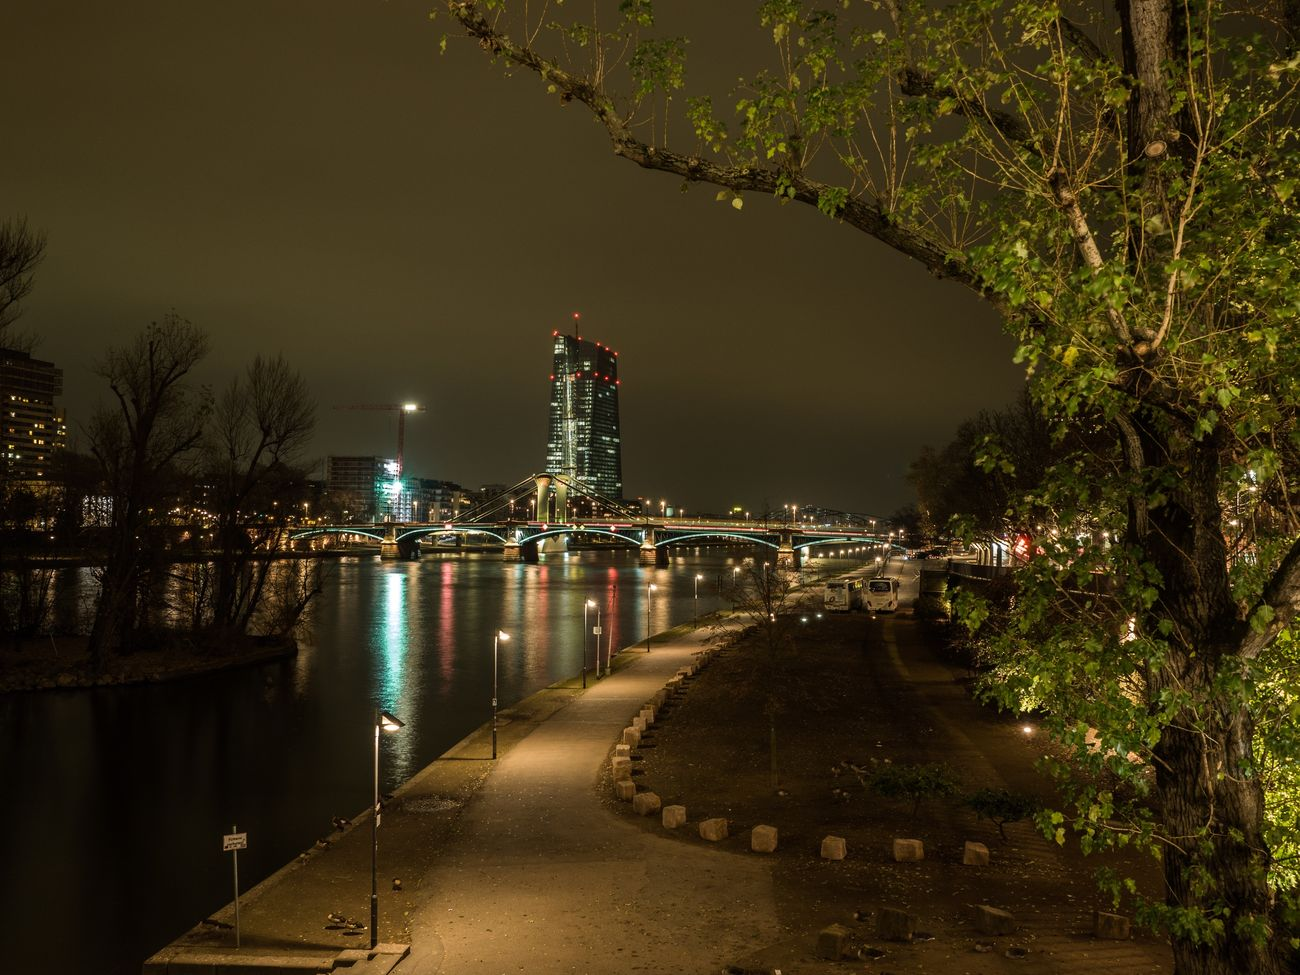 A different perspective onto the ECB. Night Illuminated Architecture The Way Forward Tree City Travel Destinations Outdoors No People Water Sky Nature Frankfurt Main River Bridge Lights Urban Reflection